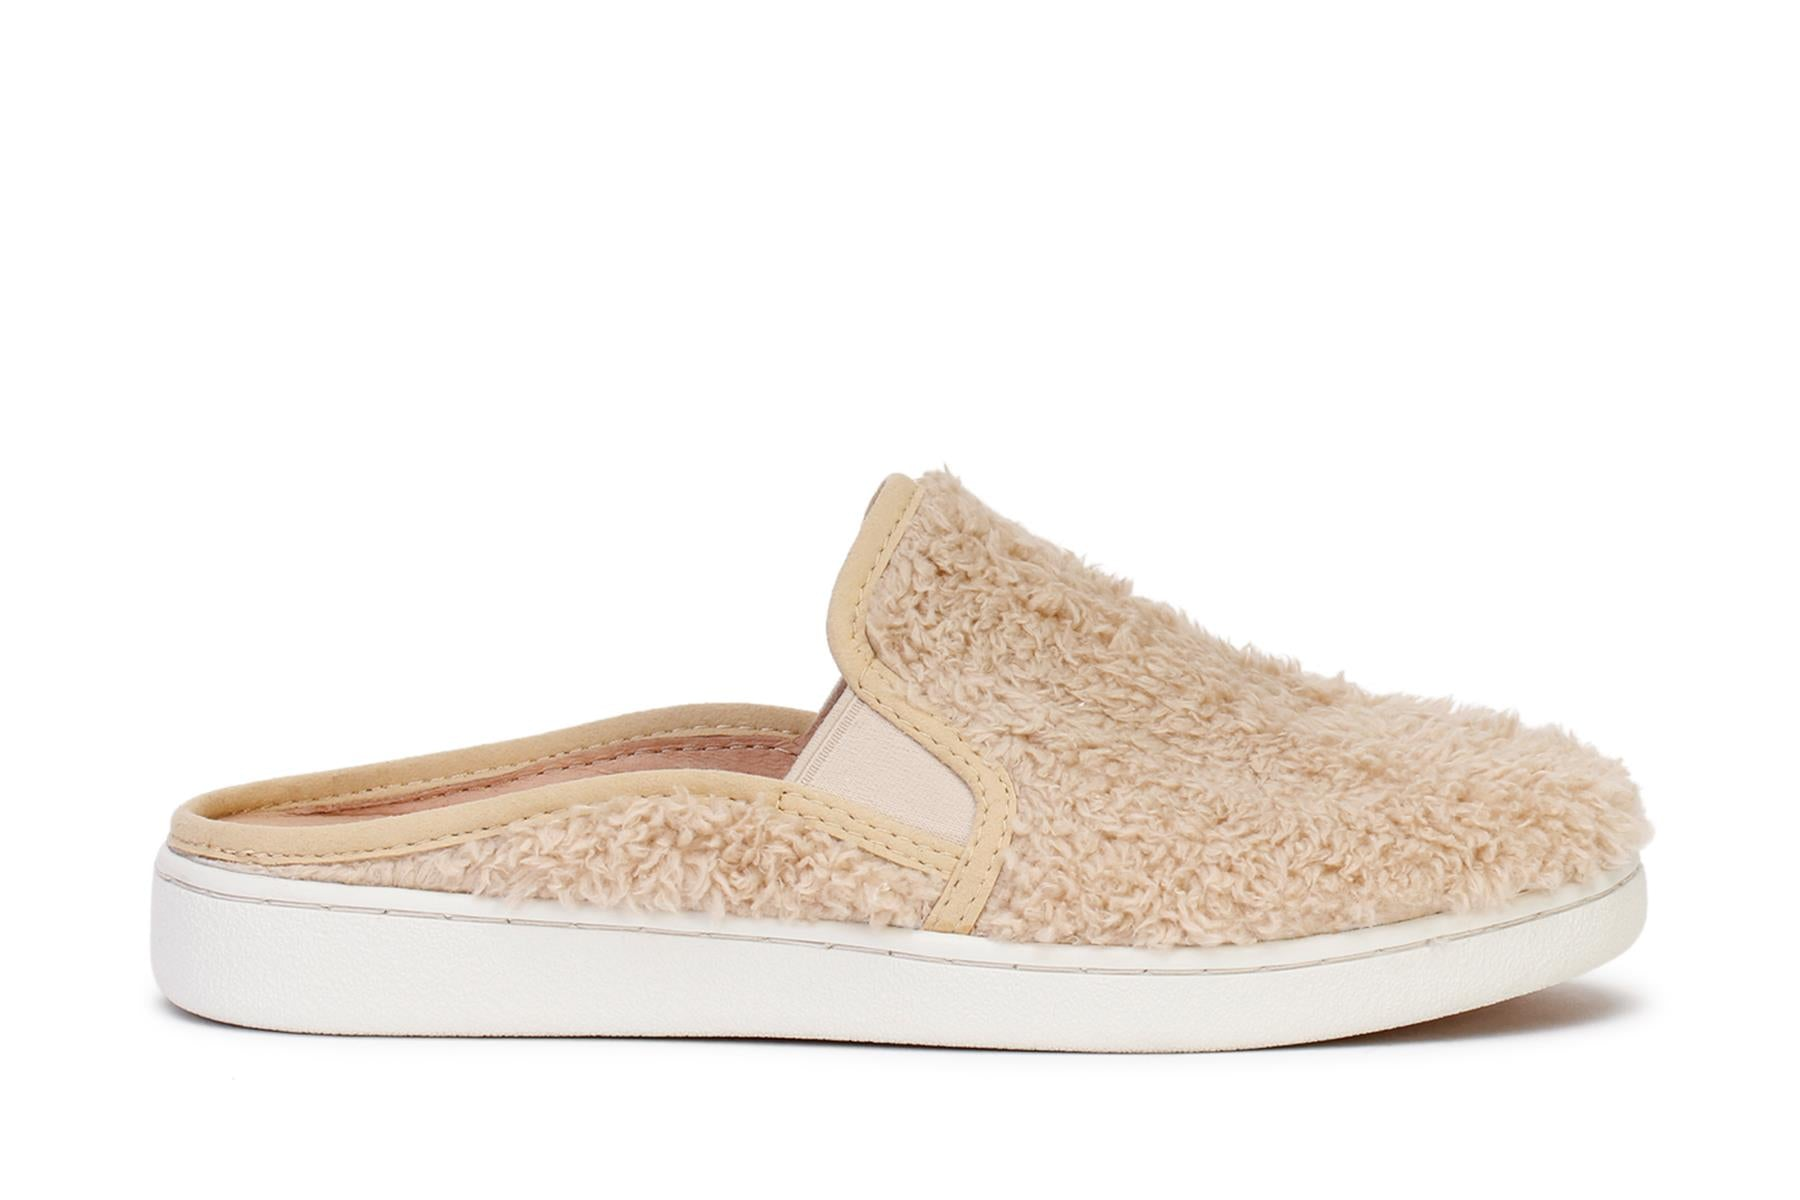 ugg-womens-w-luci-slip-on-shoes-natural-main